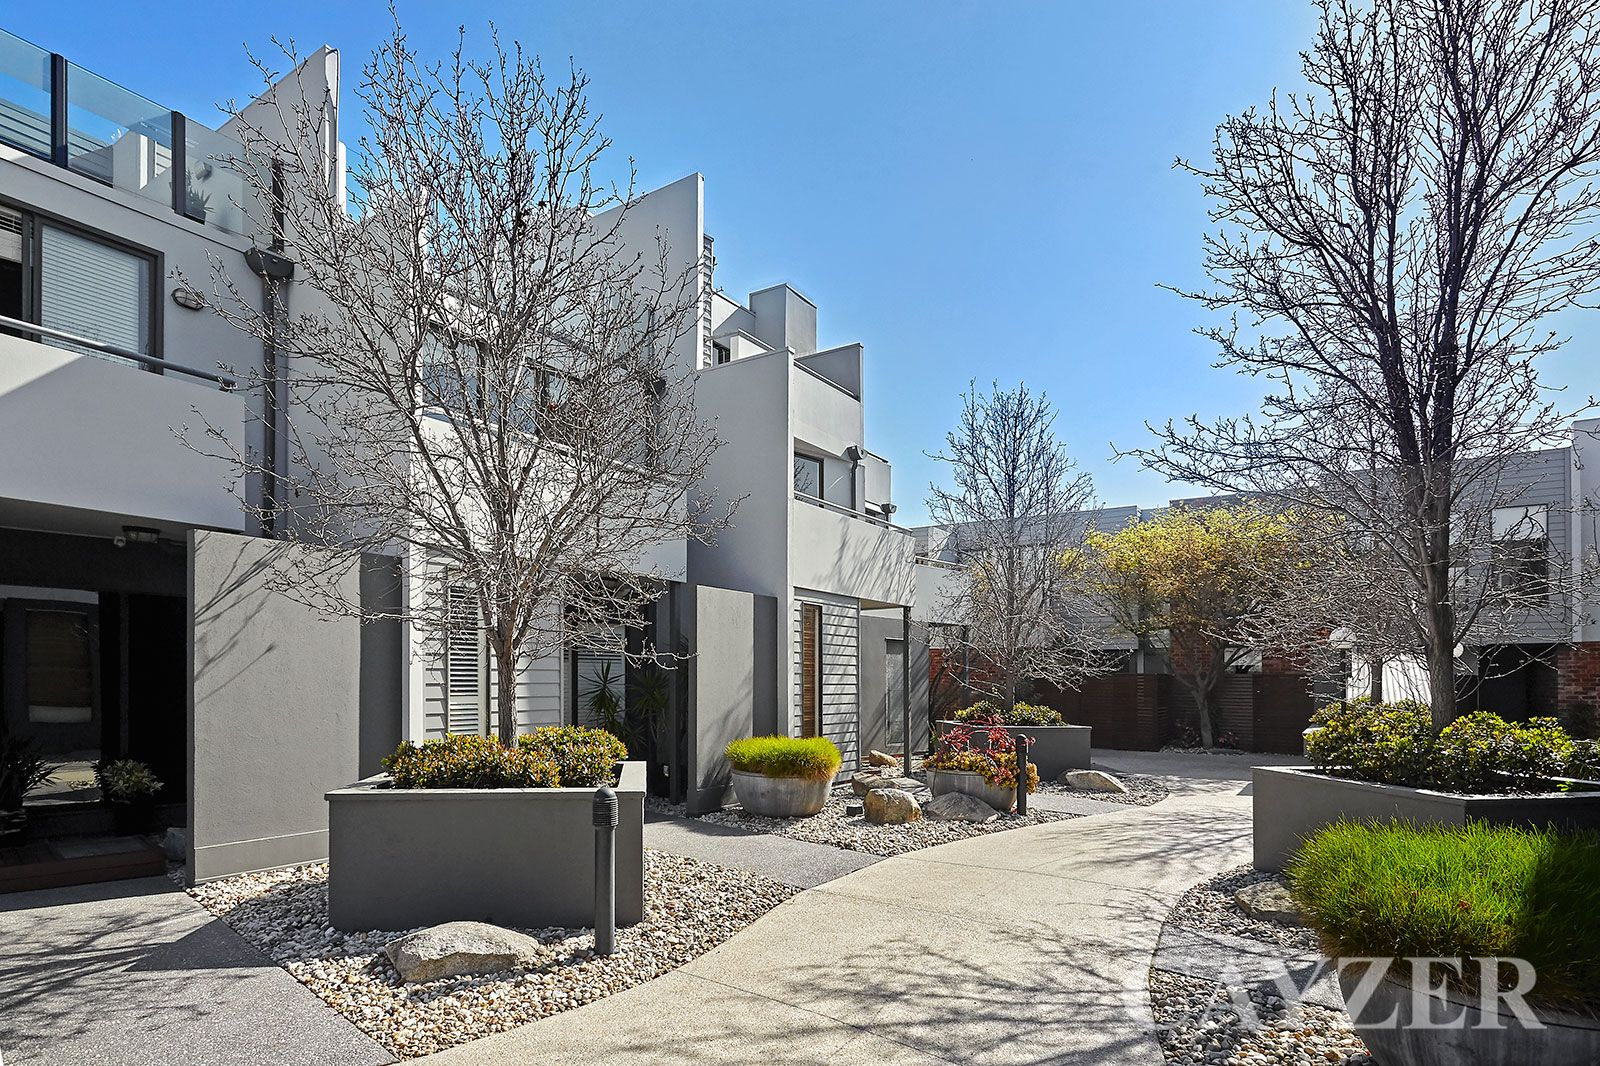 16/97 Cruikshank Street, Port Melbourne VIC 3207, Image 0